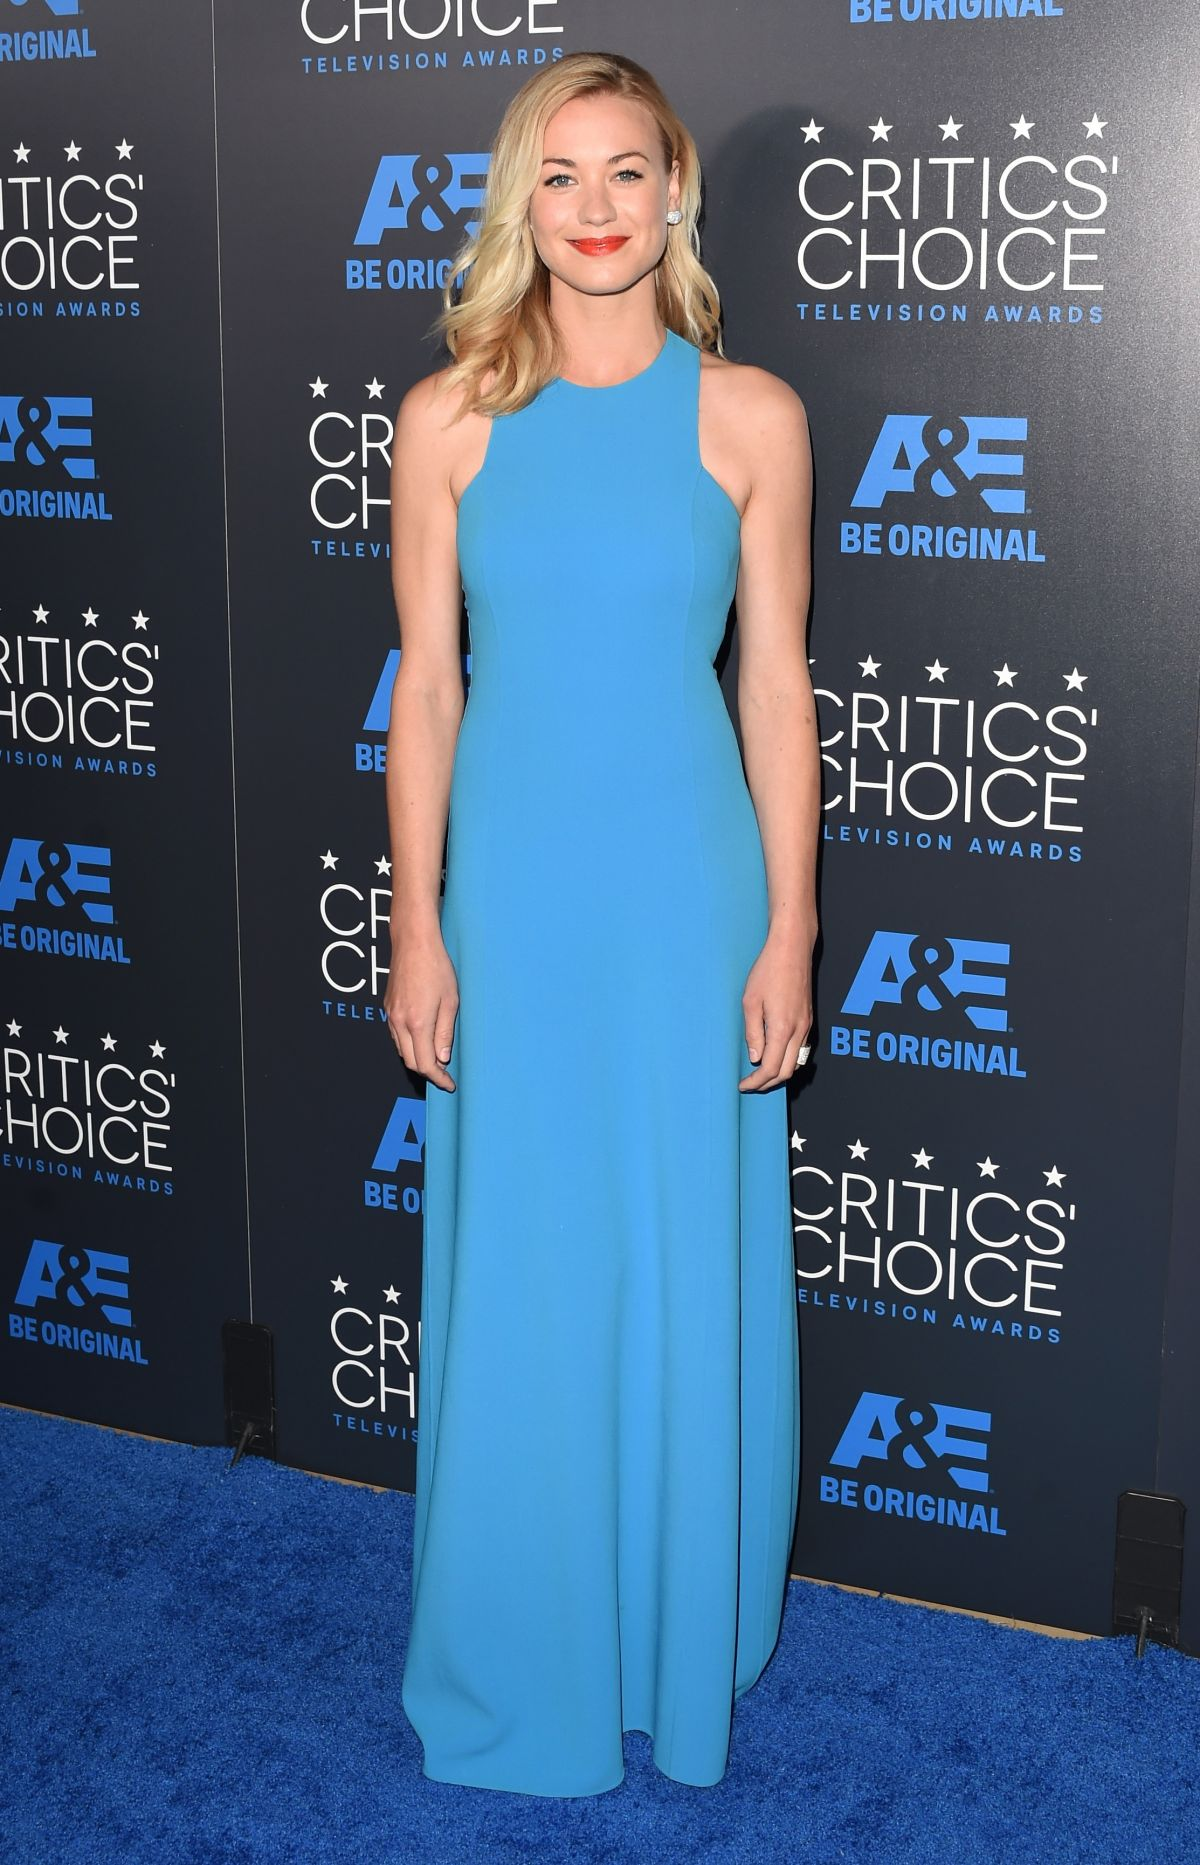 yvonne-strahovski-at-5th-annual-critics-choice-television-awards-in-beverly-hills_1